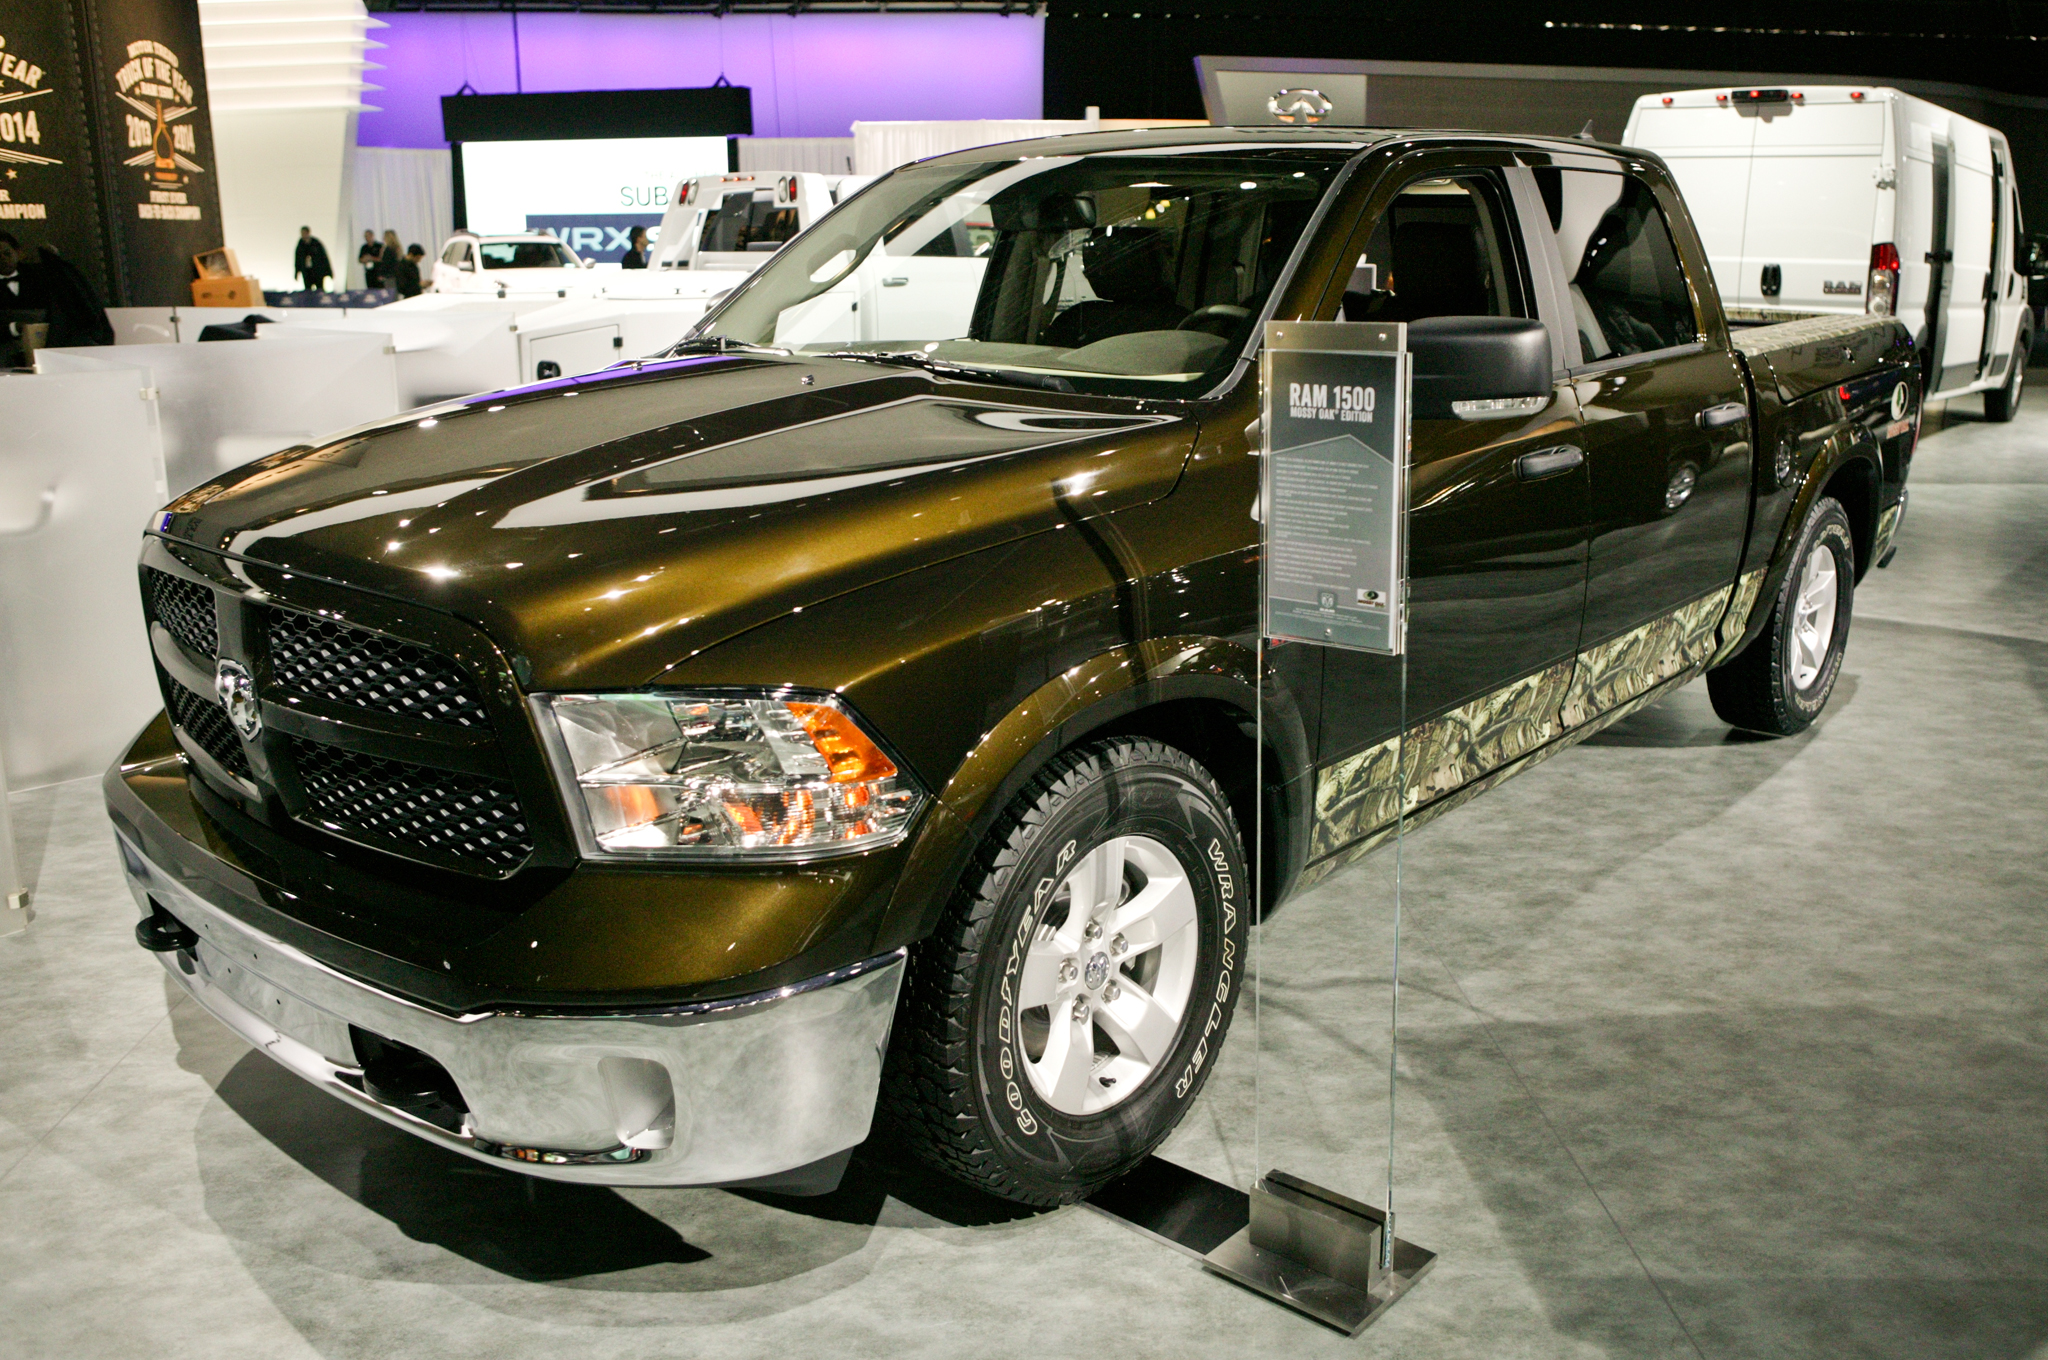 2014 Ram 1500 Mossy Oak Edition Back for More